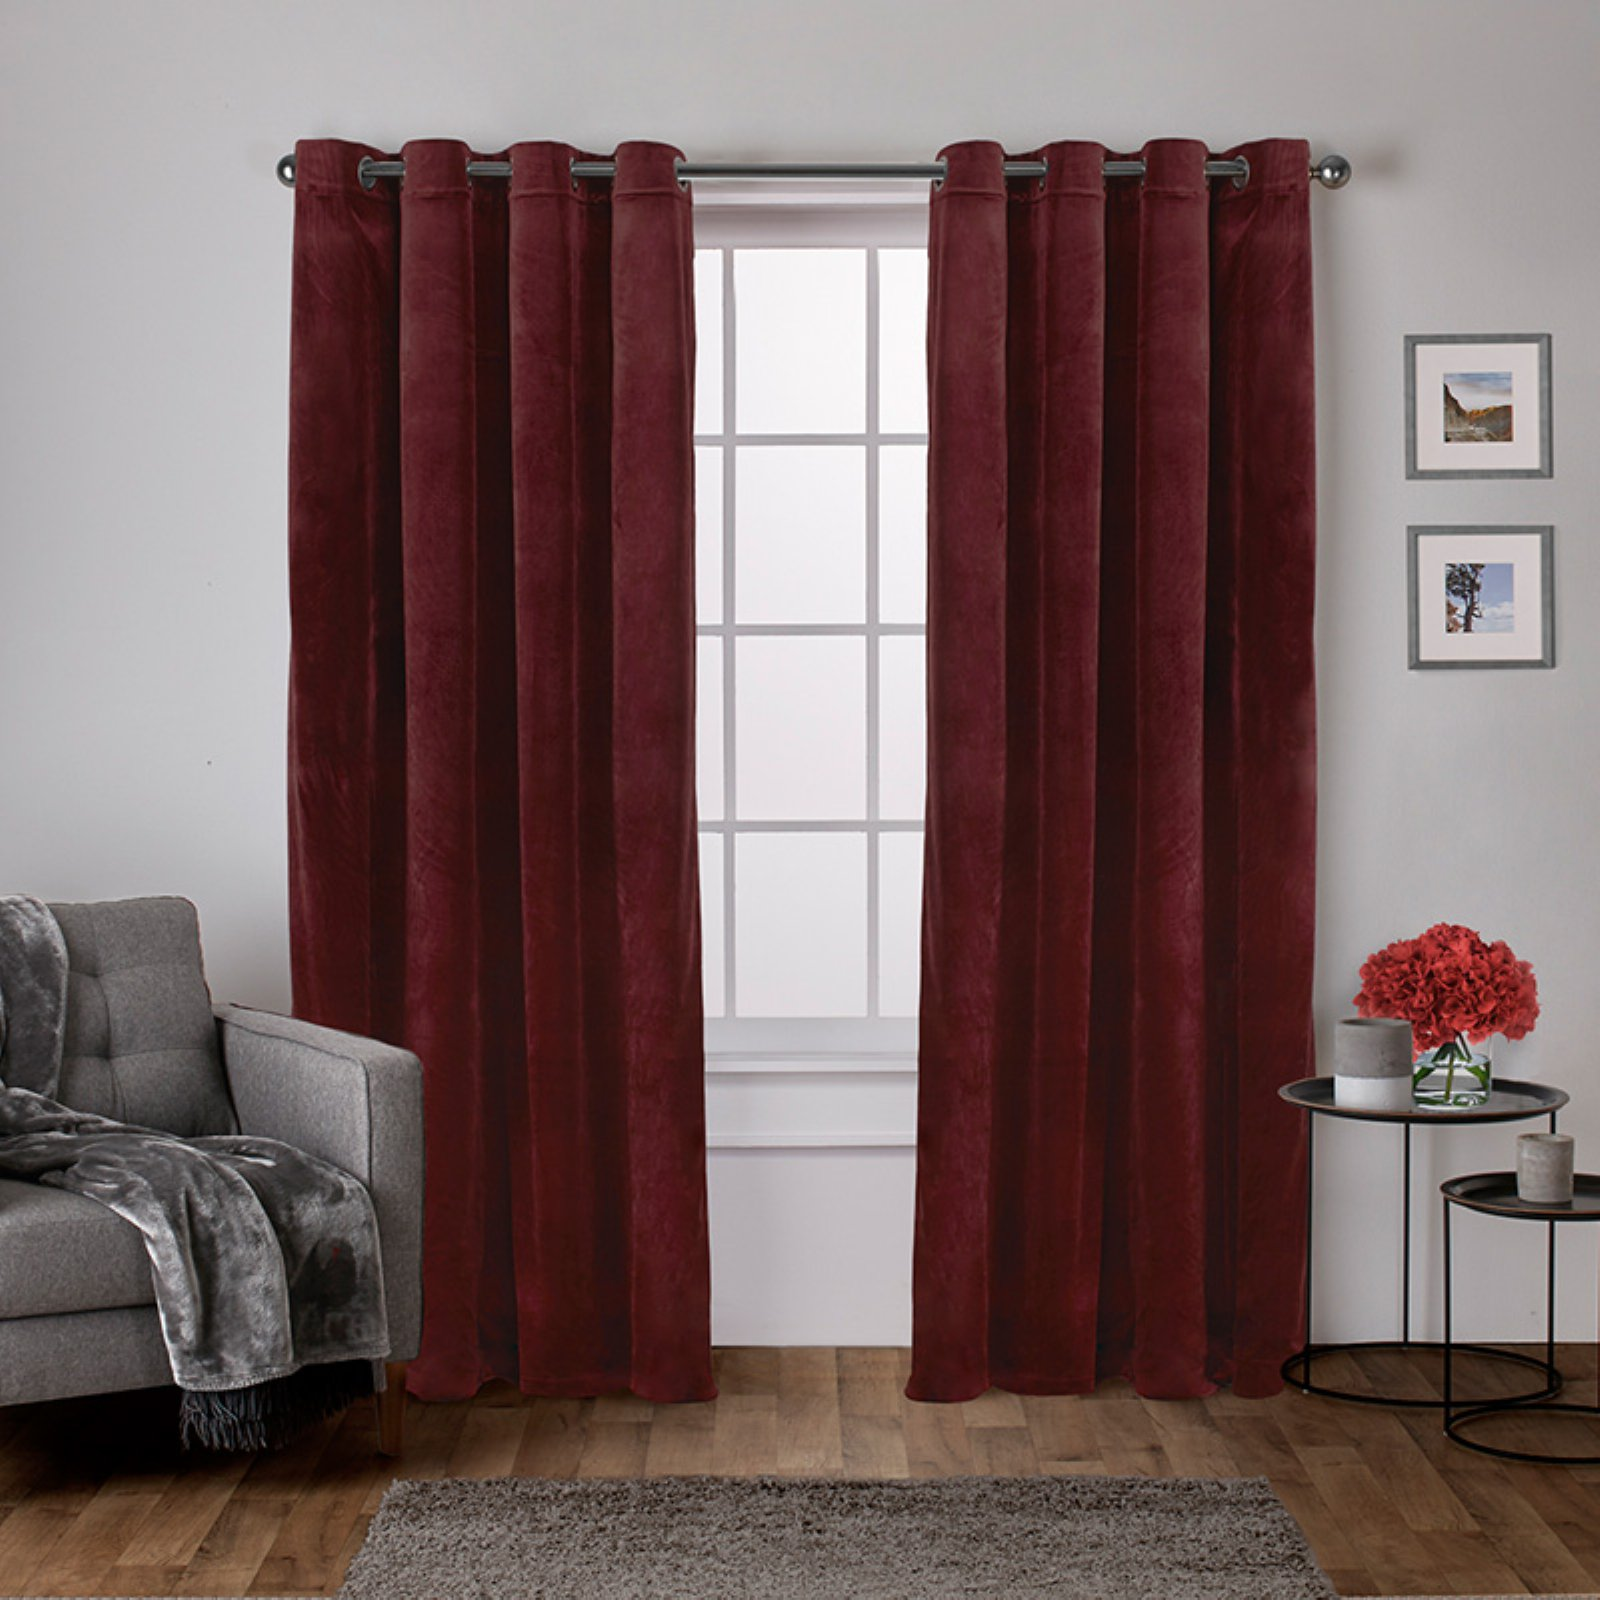 Exclusive Home Curtains 2 Pack Velvet Heavyweight Grommet Top Curtain Panels